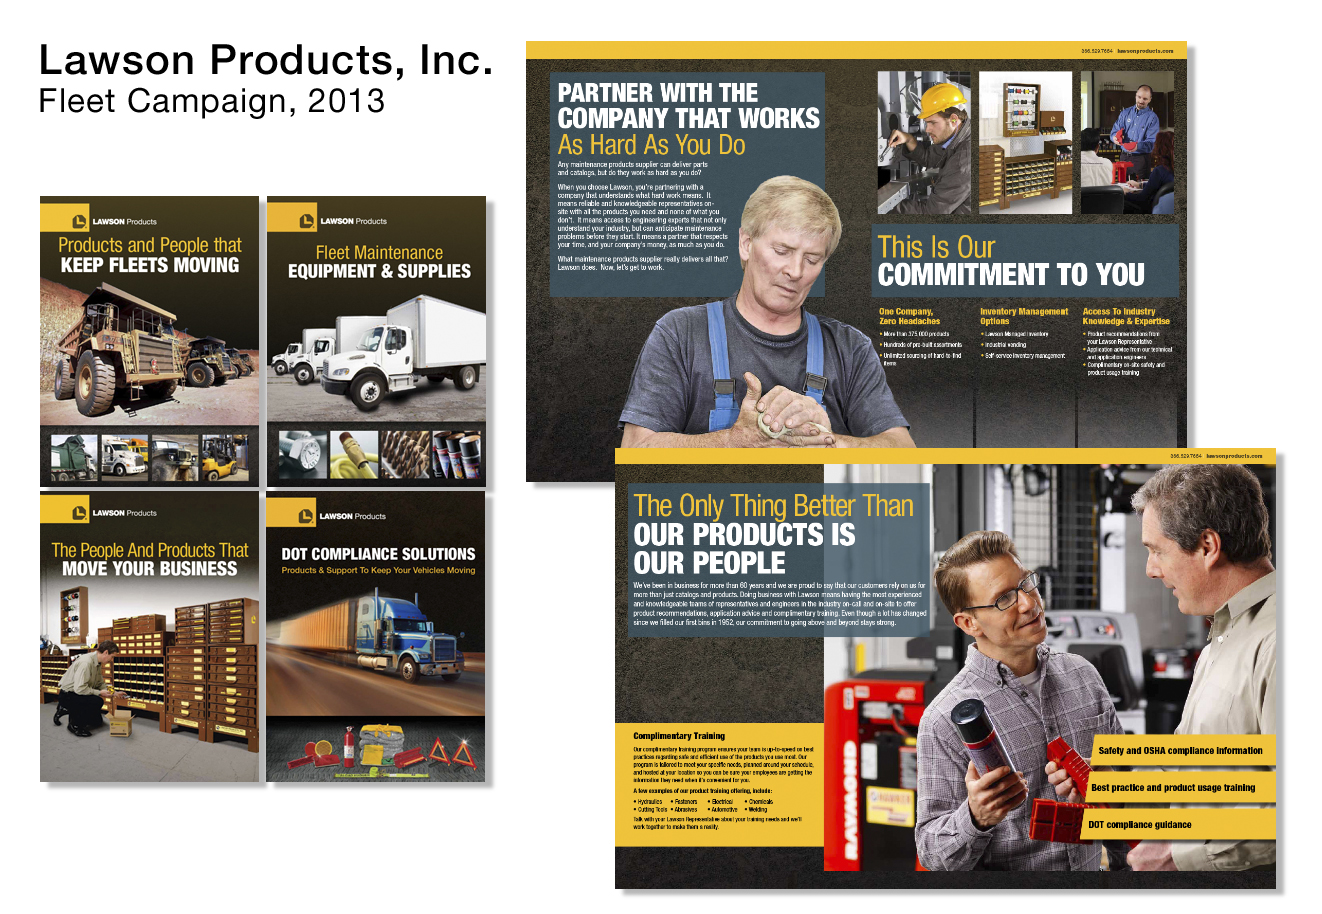 Fleet Launch Customer Campaign Brochures